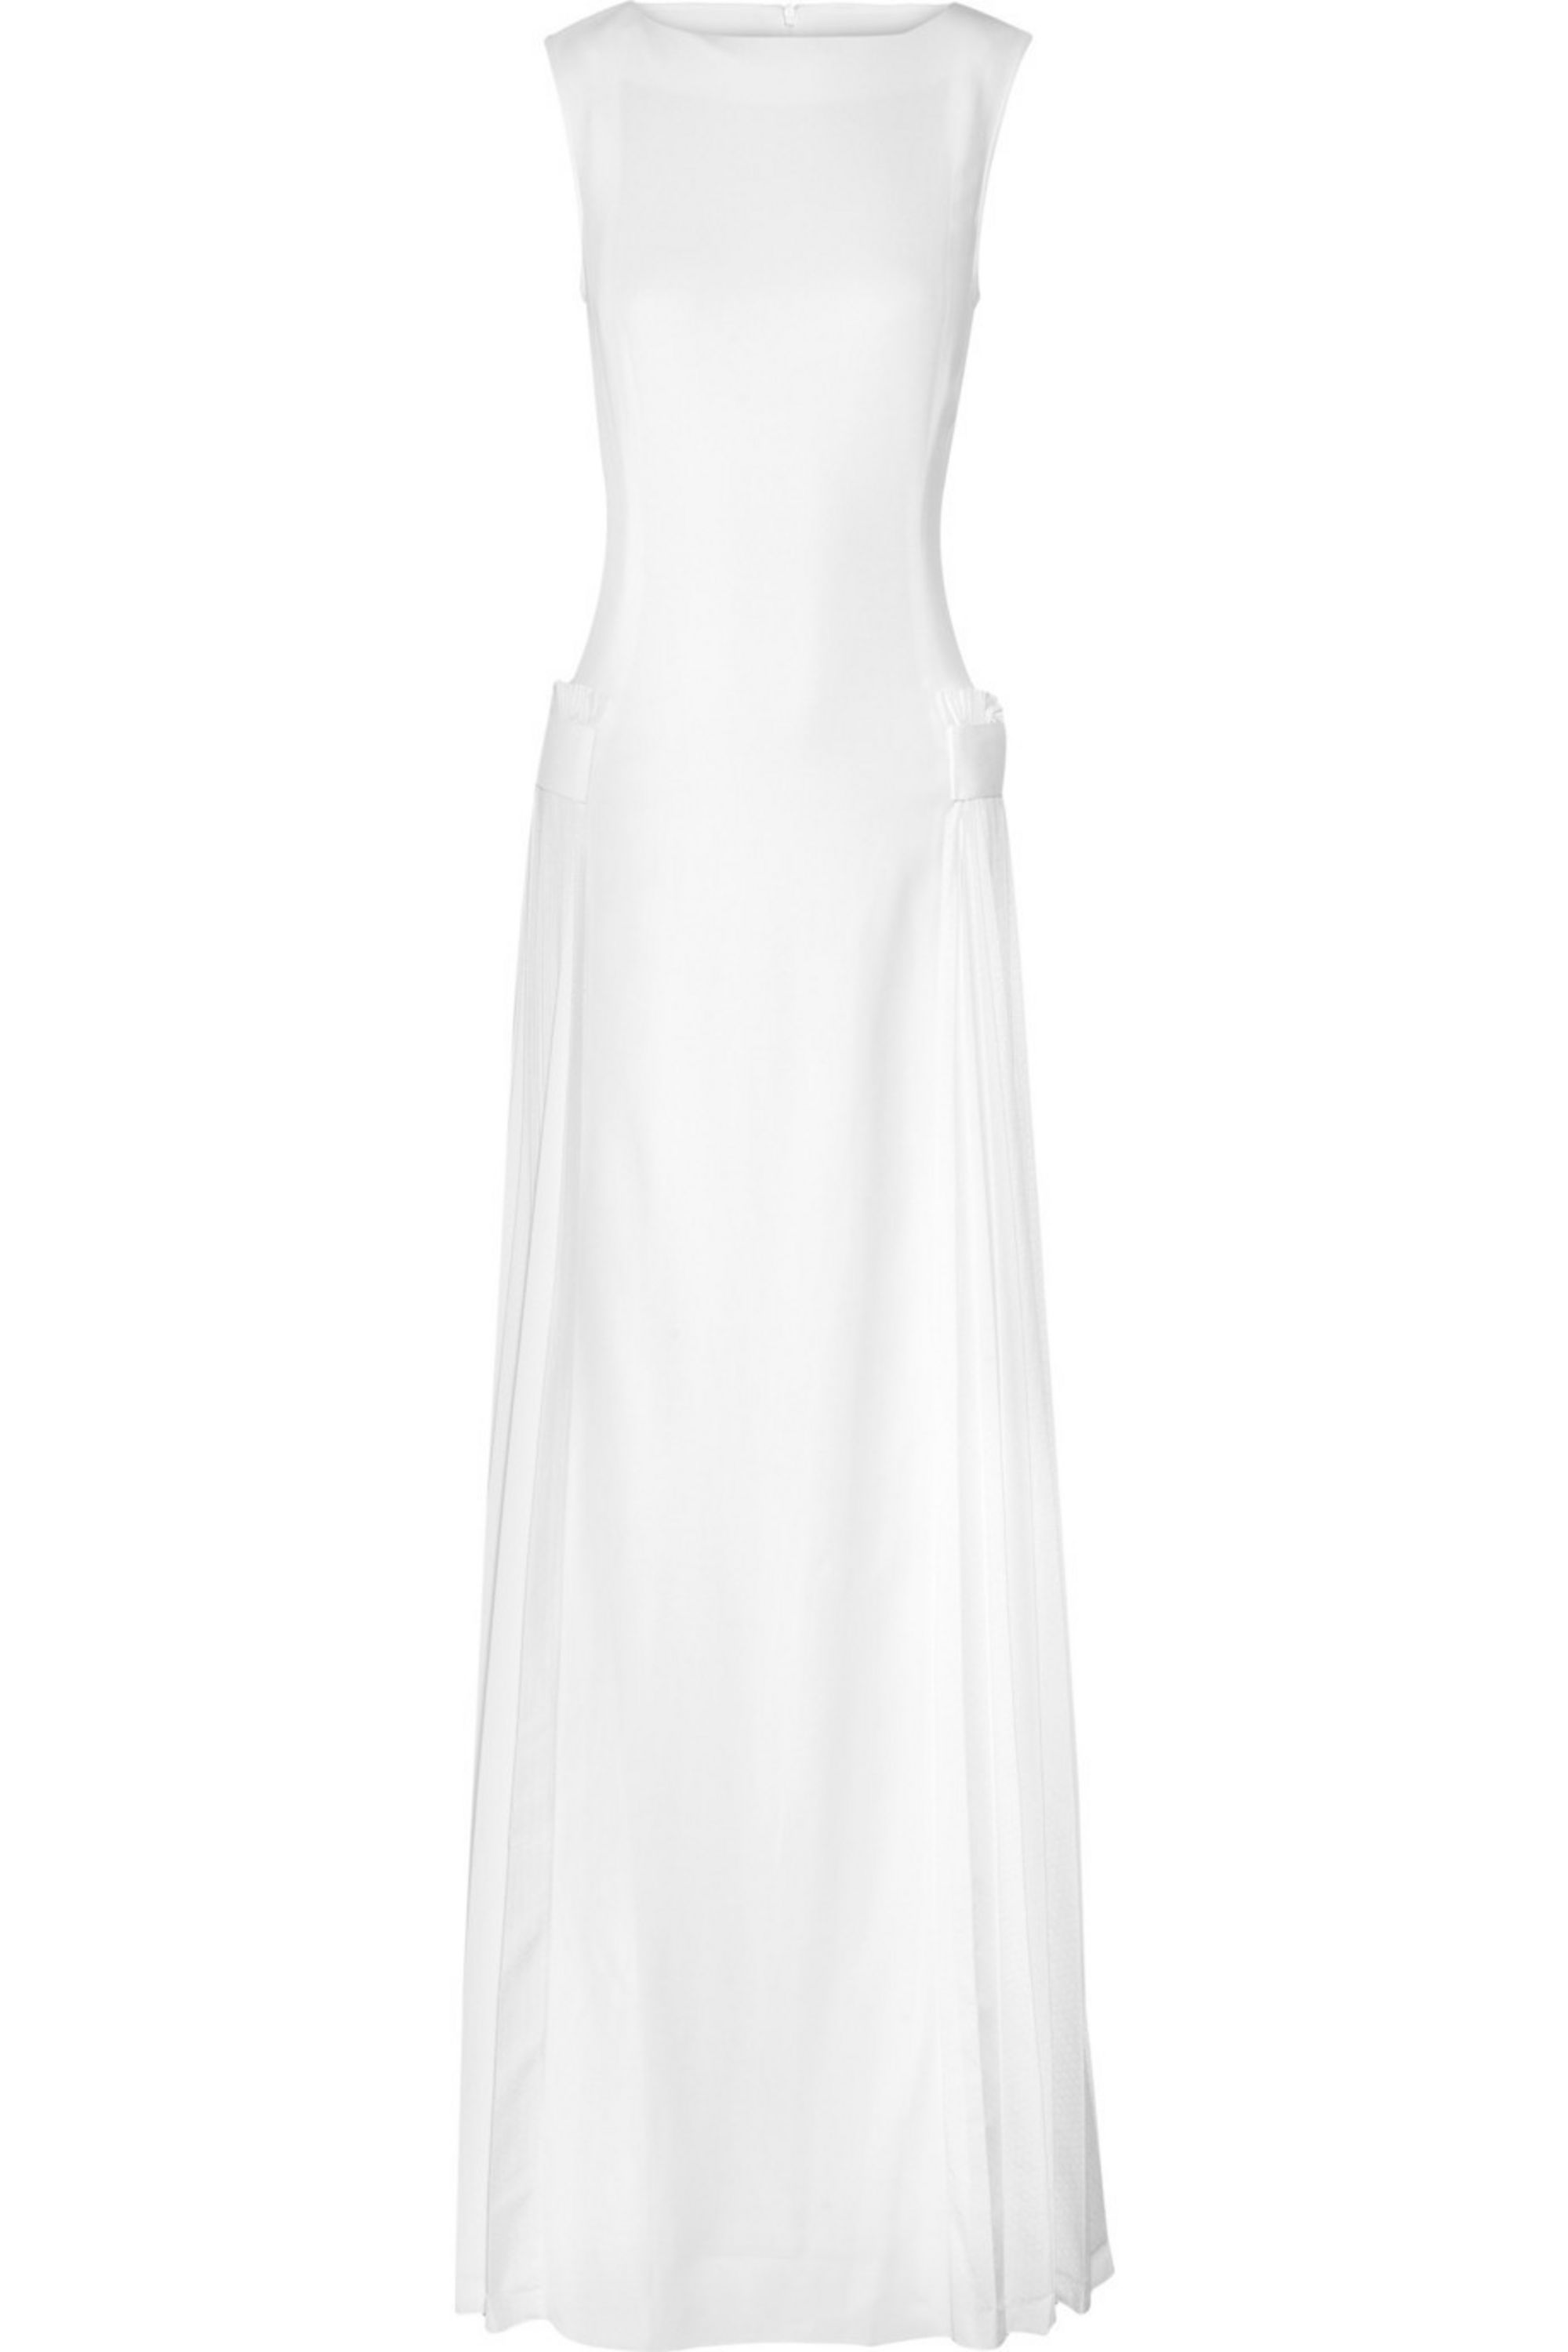 Victoria Beckham Pleat-detailed stretch-crepe gown